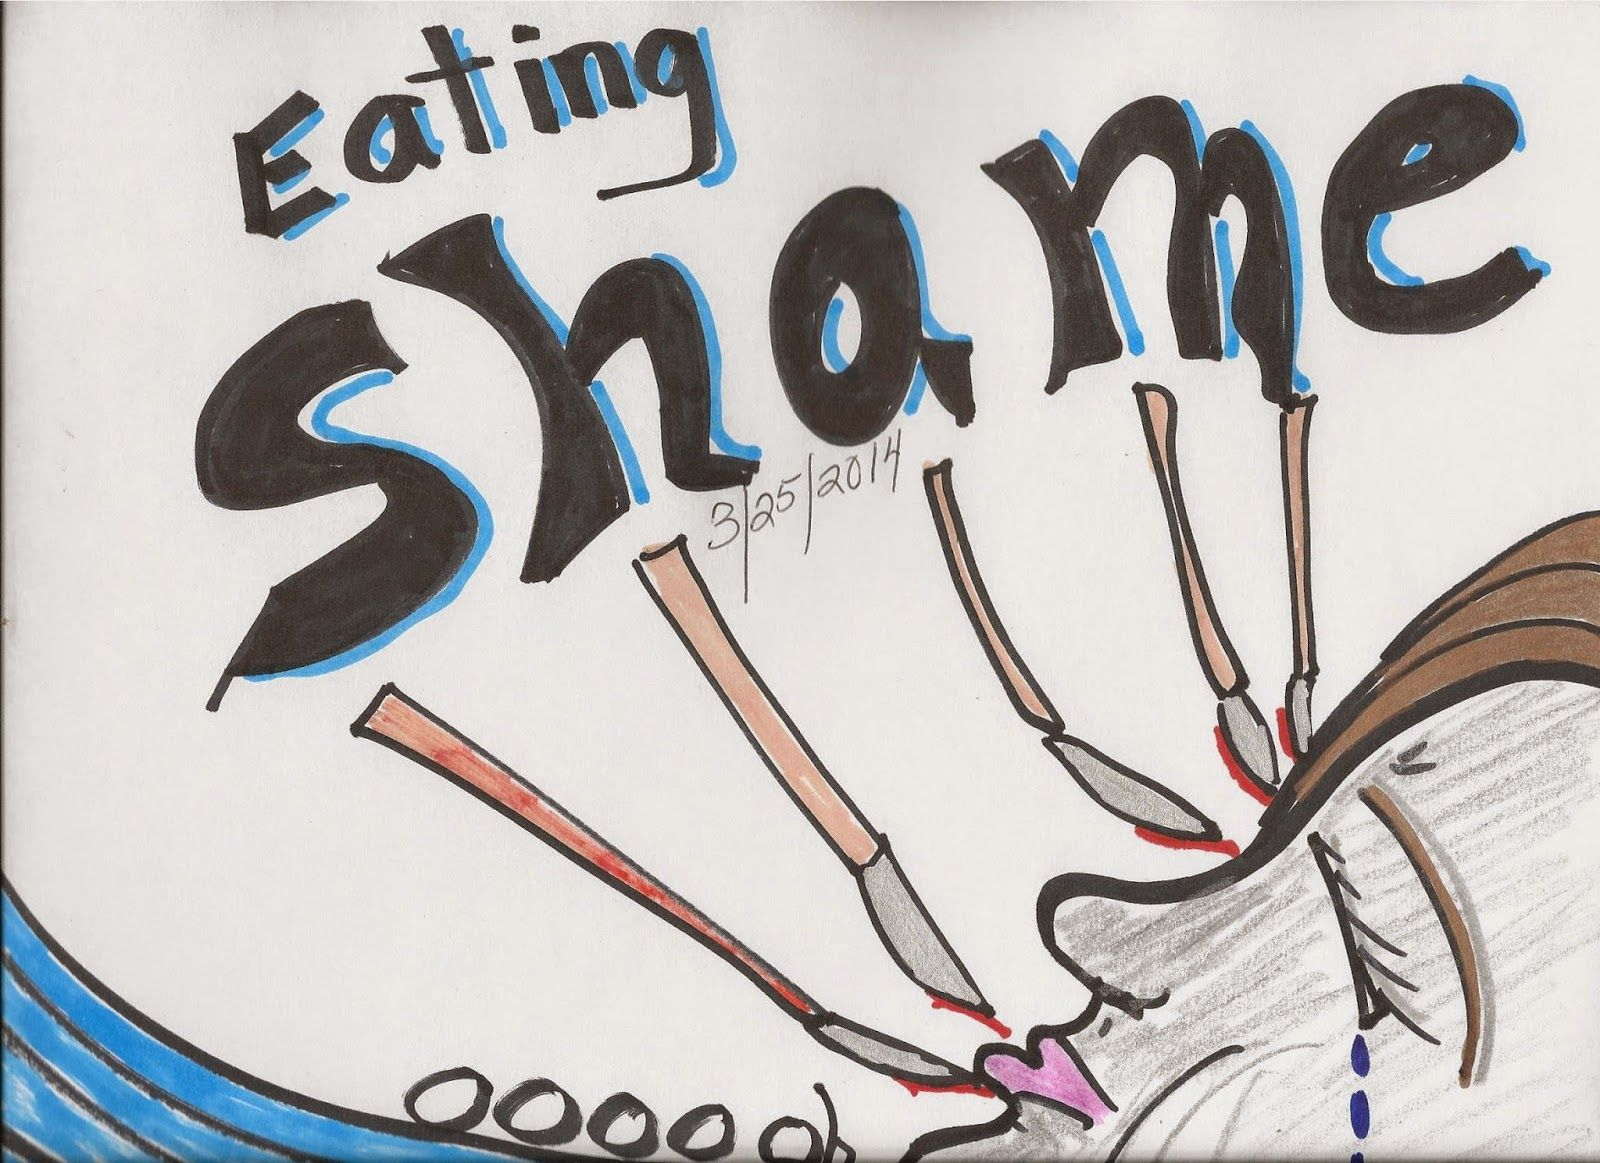 Eating Disorders with Dr Kathleen Fuller: Stop Feeding Guilt and Shame